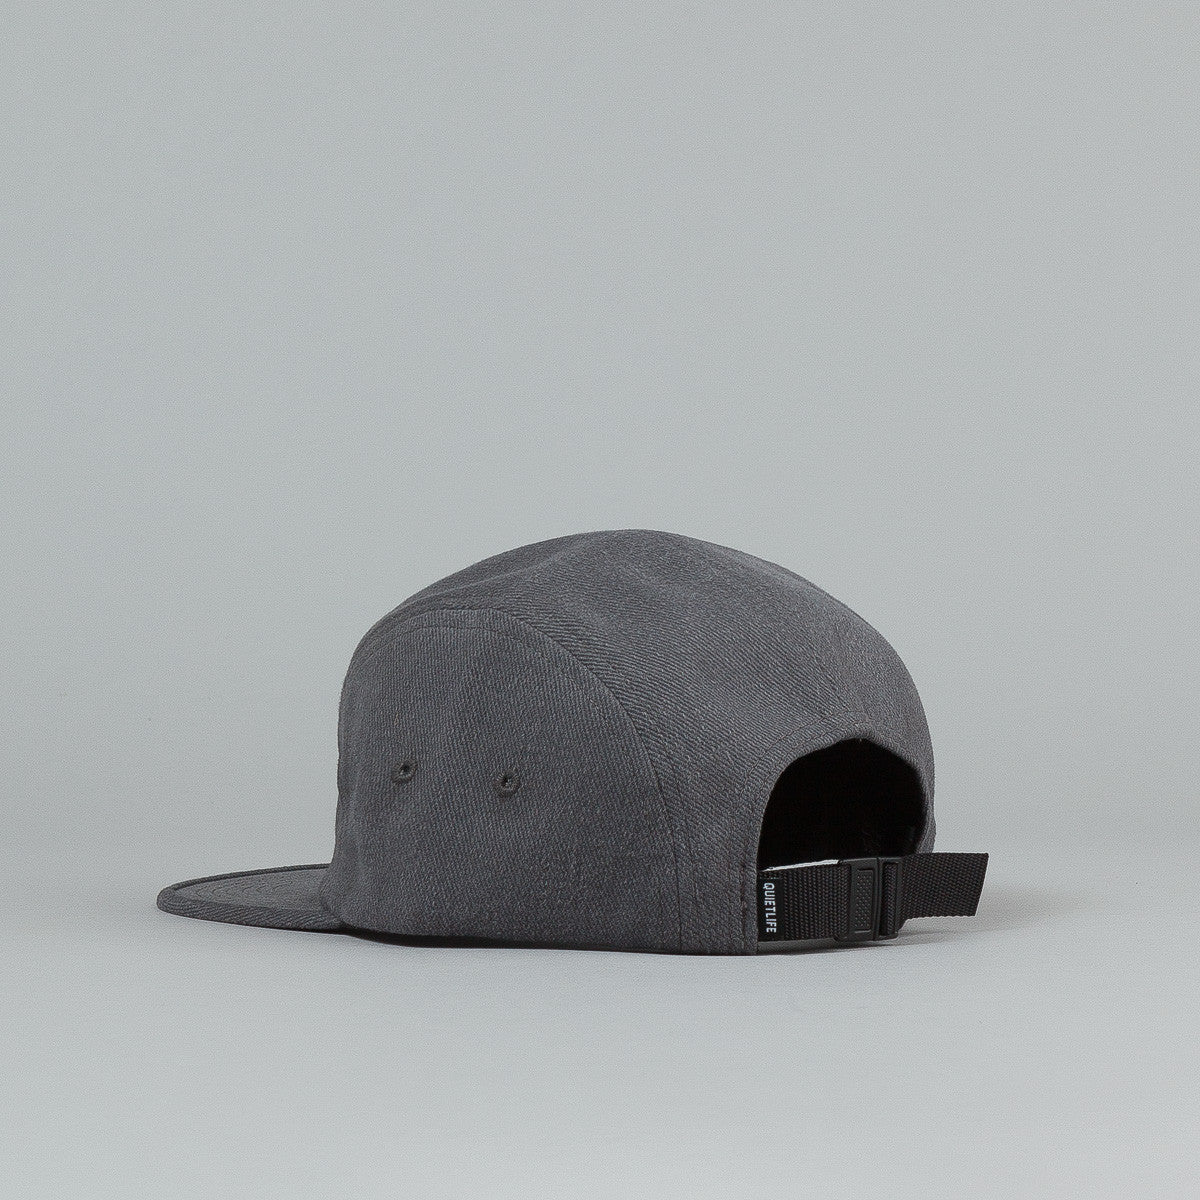 The Quiet Life Day Logo Moon Cap - Graphite